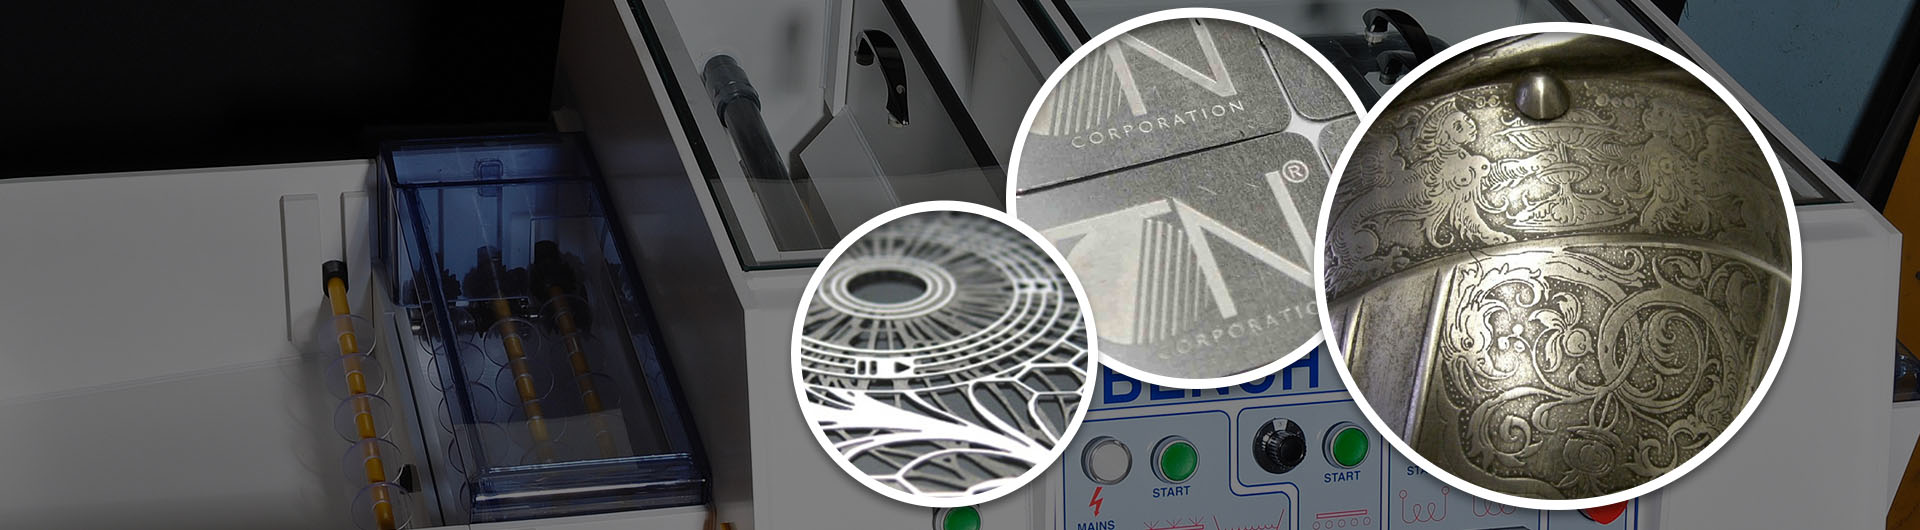 Fortex Engineering Ltd Printed Circuit Boards Chemical Engraved Etching A Board Metal Plates And Milling Equipment